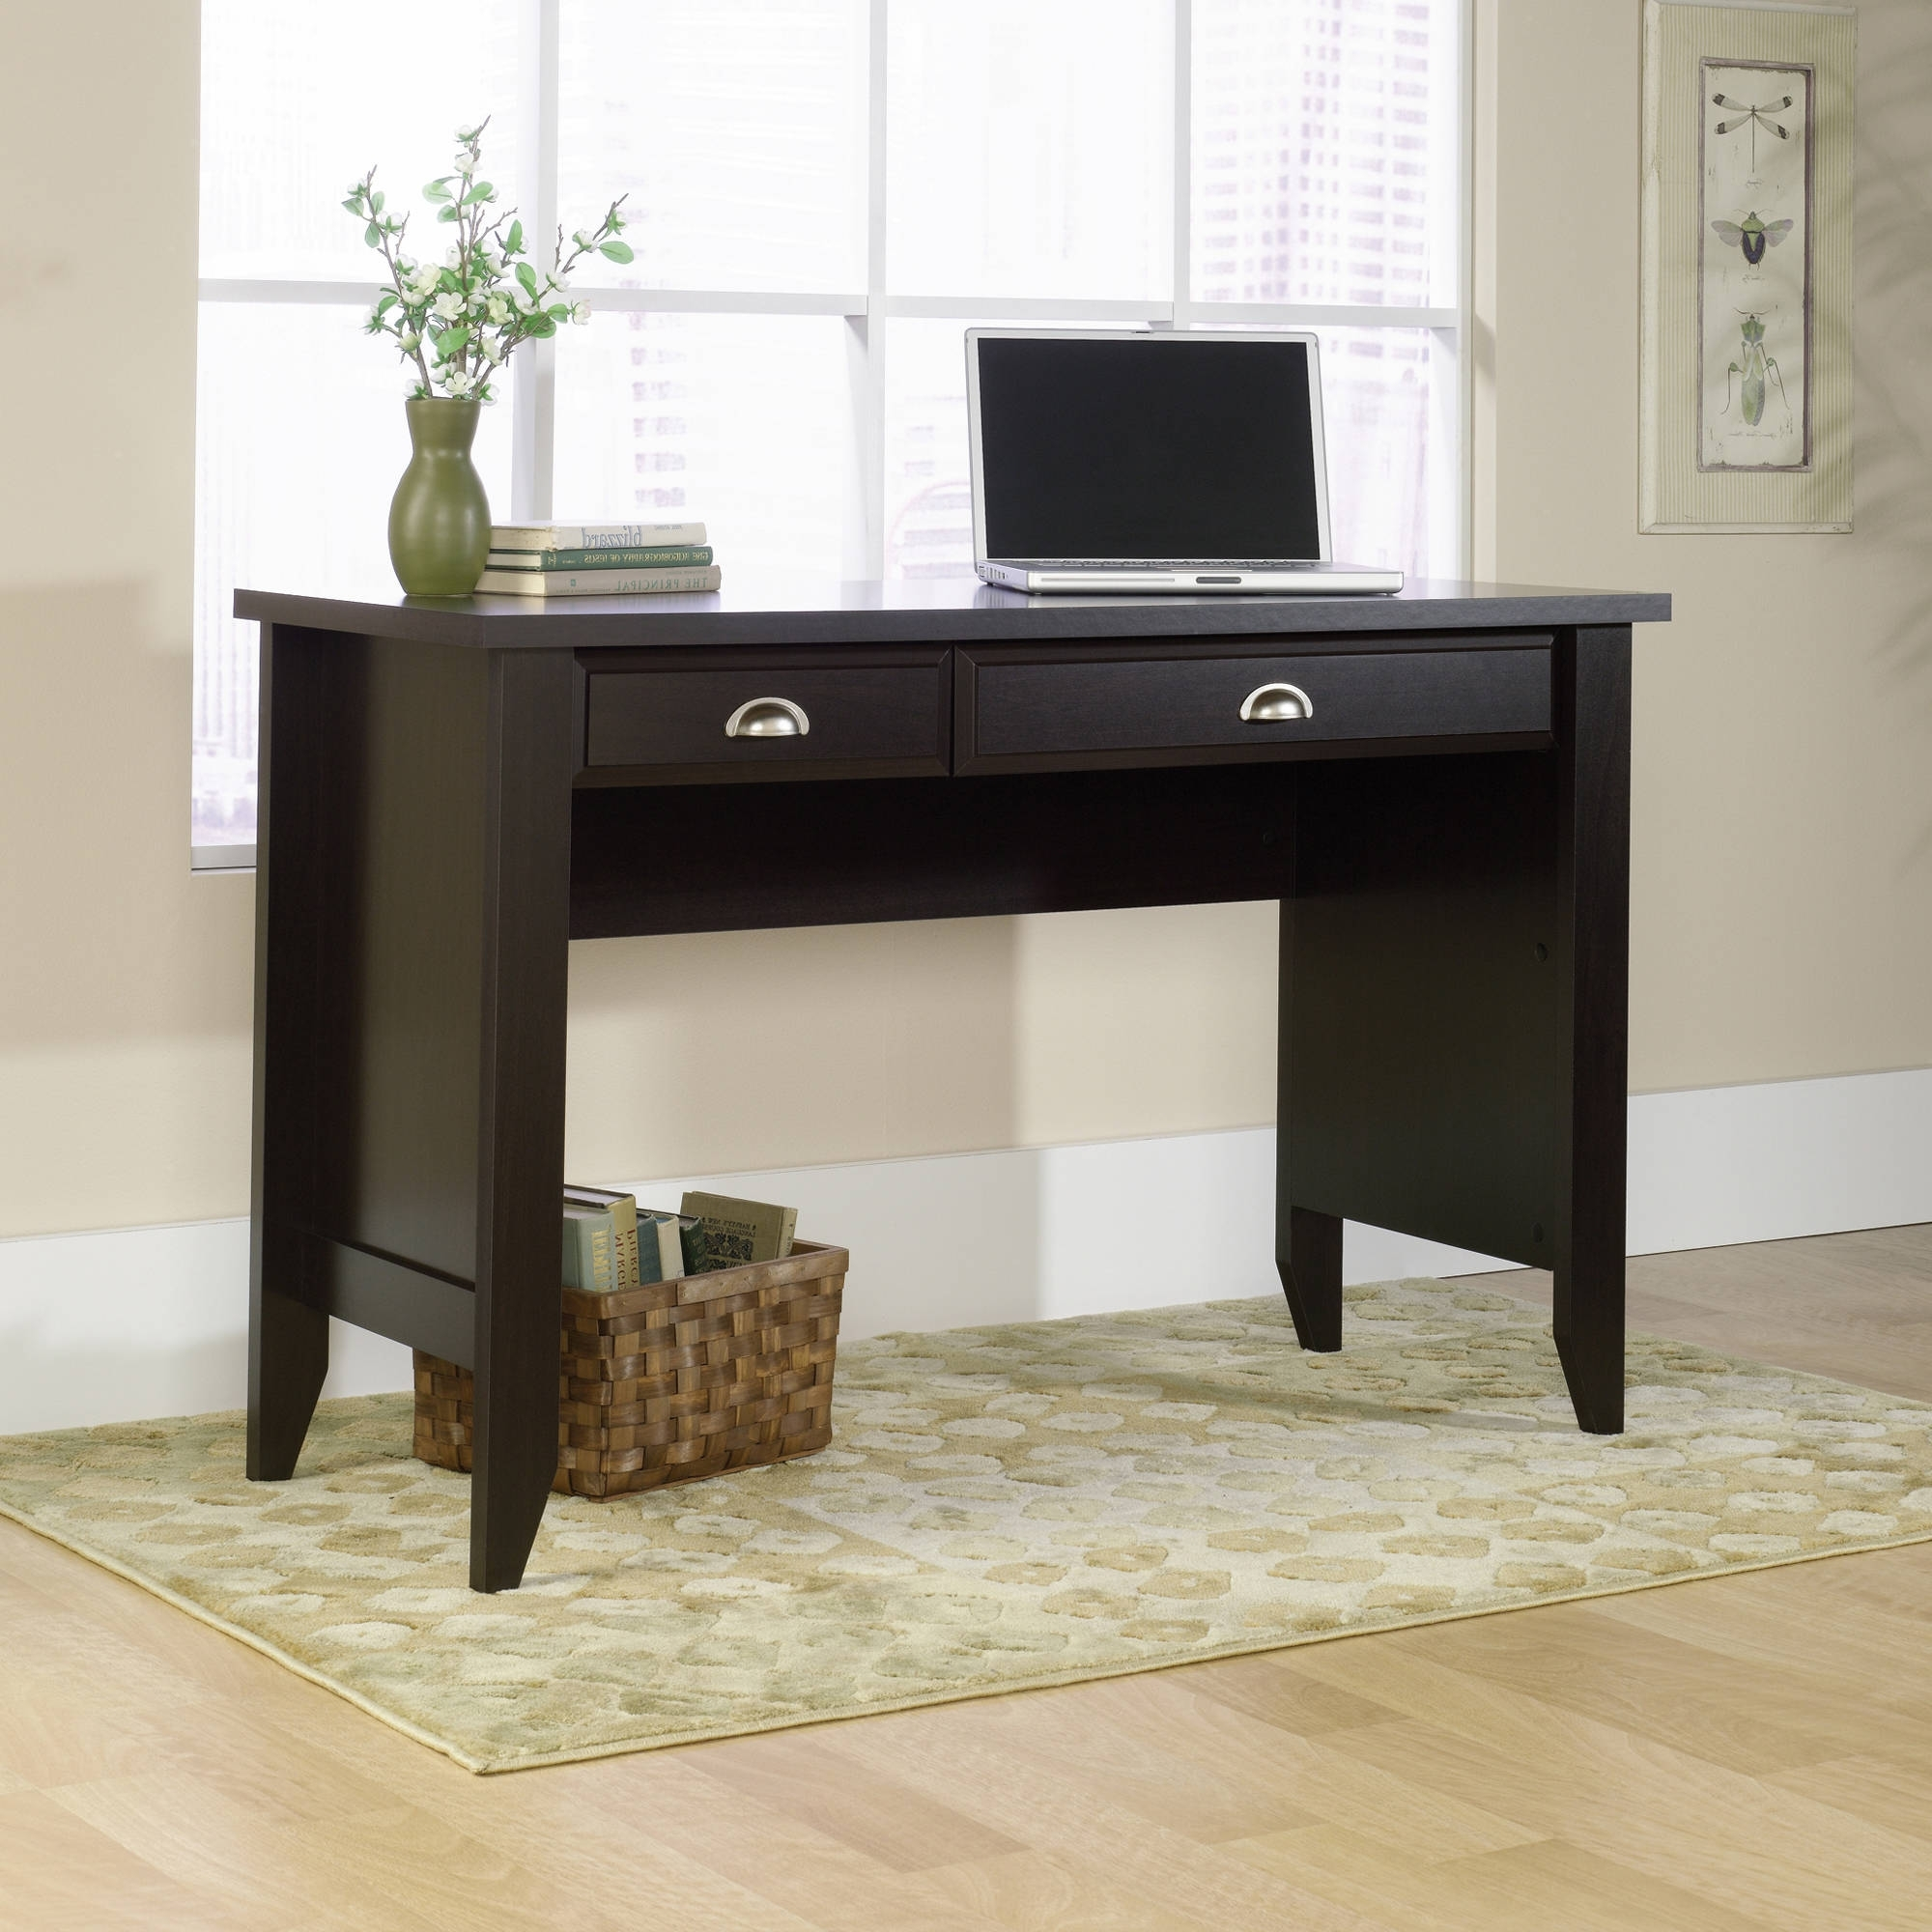 Computer Desks With Keyboard Tray Pertaining To Most Current Sauder Shoal Creek Computer Desk In Multiple Colors – Walmart (View 5 of 20)